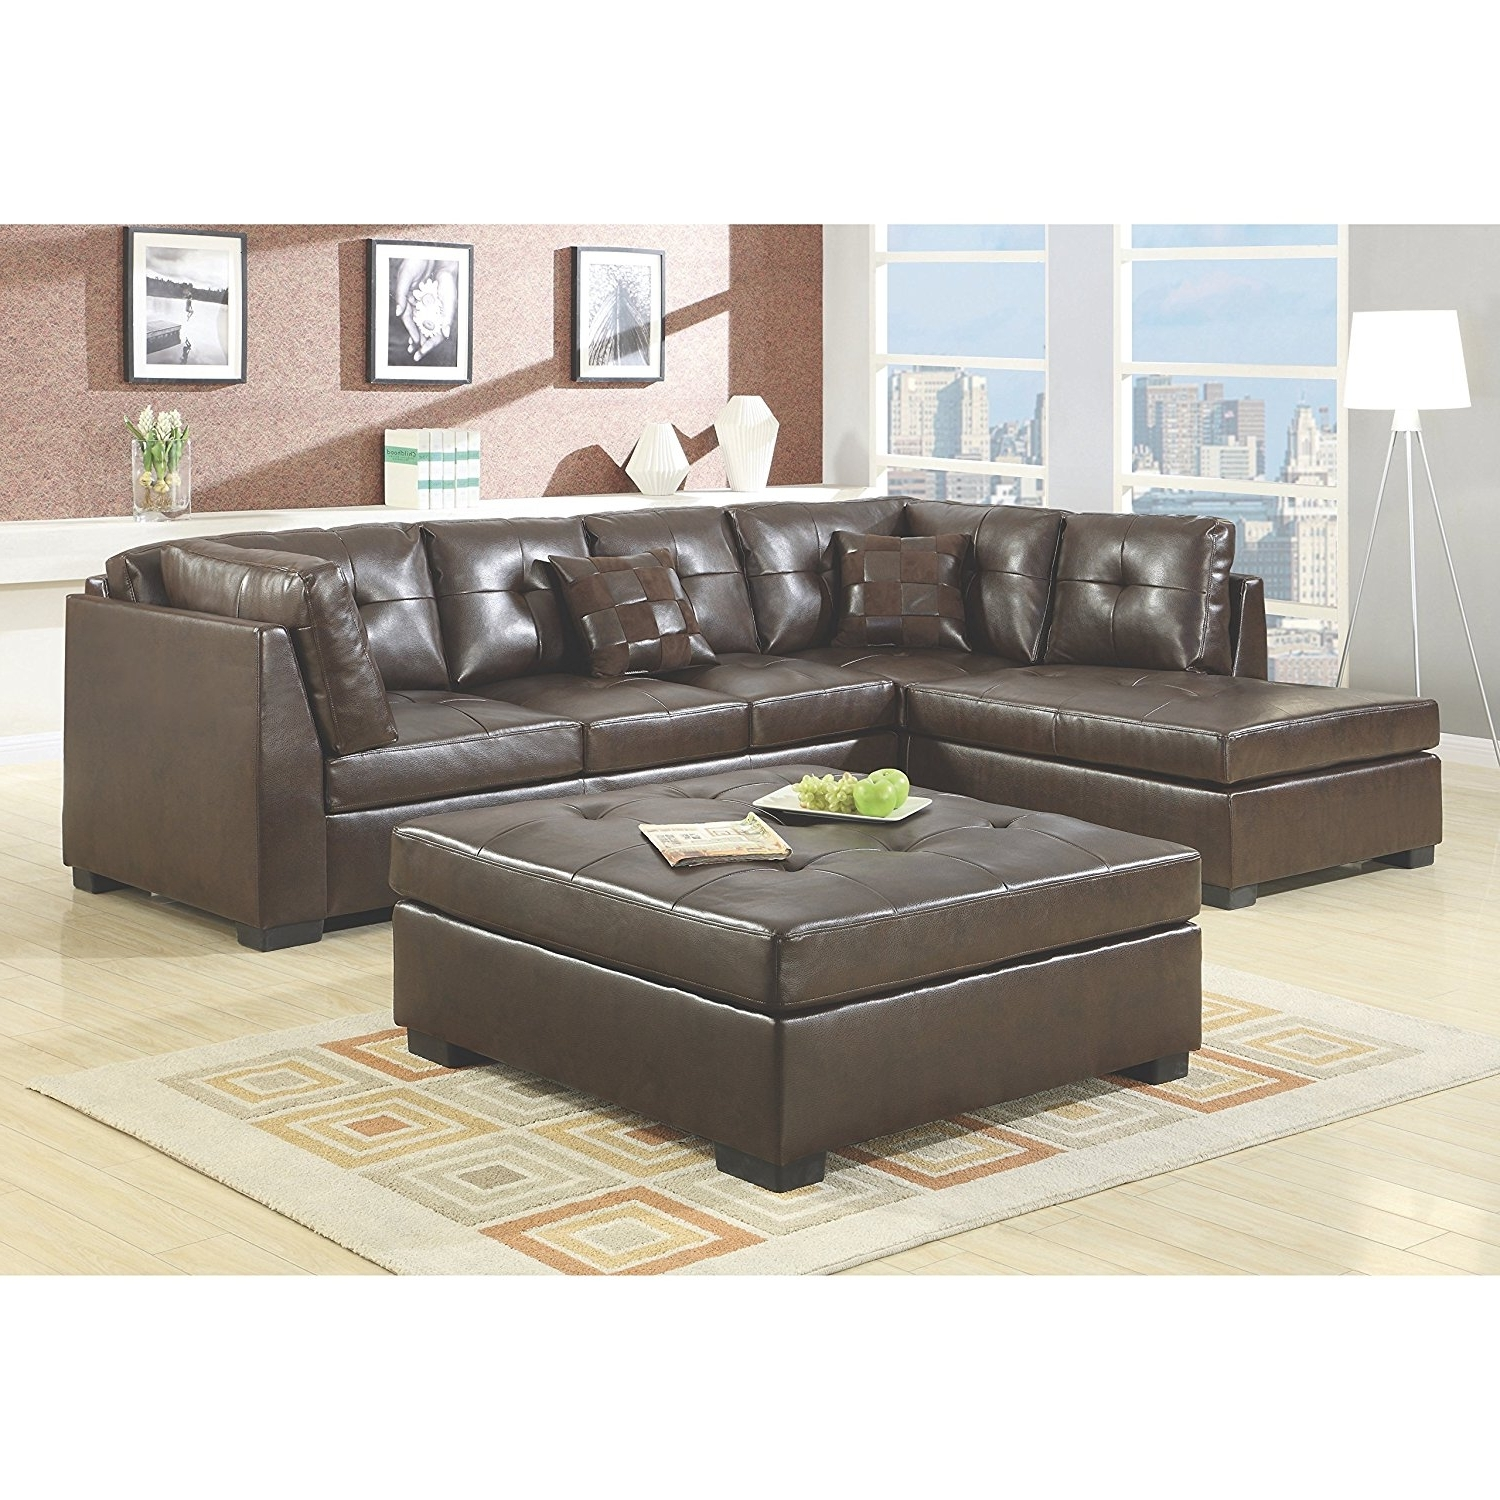 Amazon: Coaster Home Furnishings 500686 Casual Sectional Sofa Pertaining To Favorite Leather Sectionals With Chaise And Ottoman (View 11 of 15)